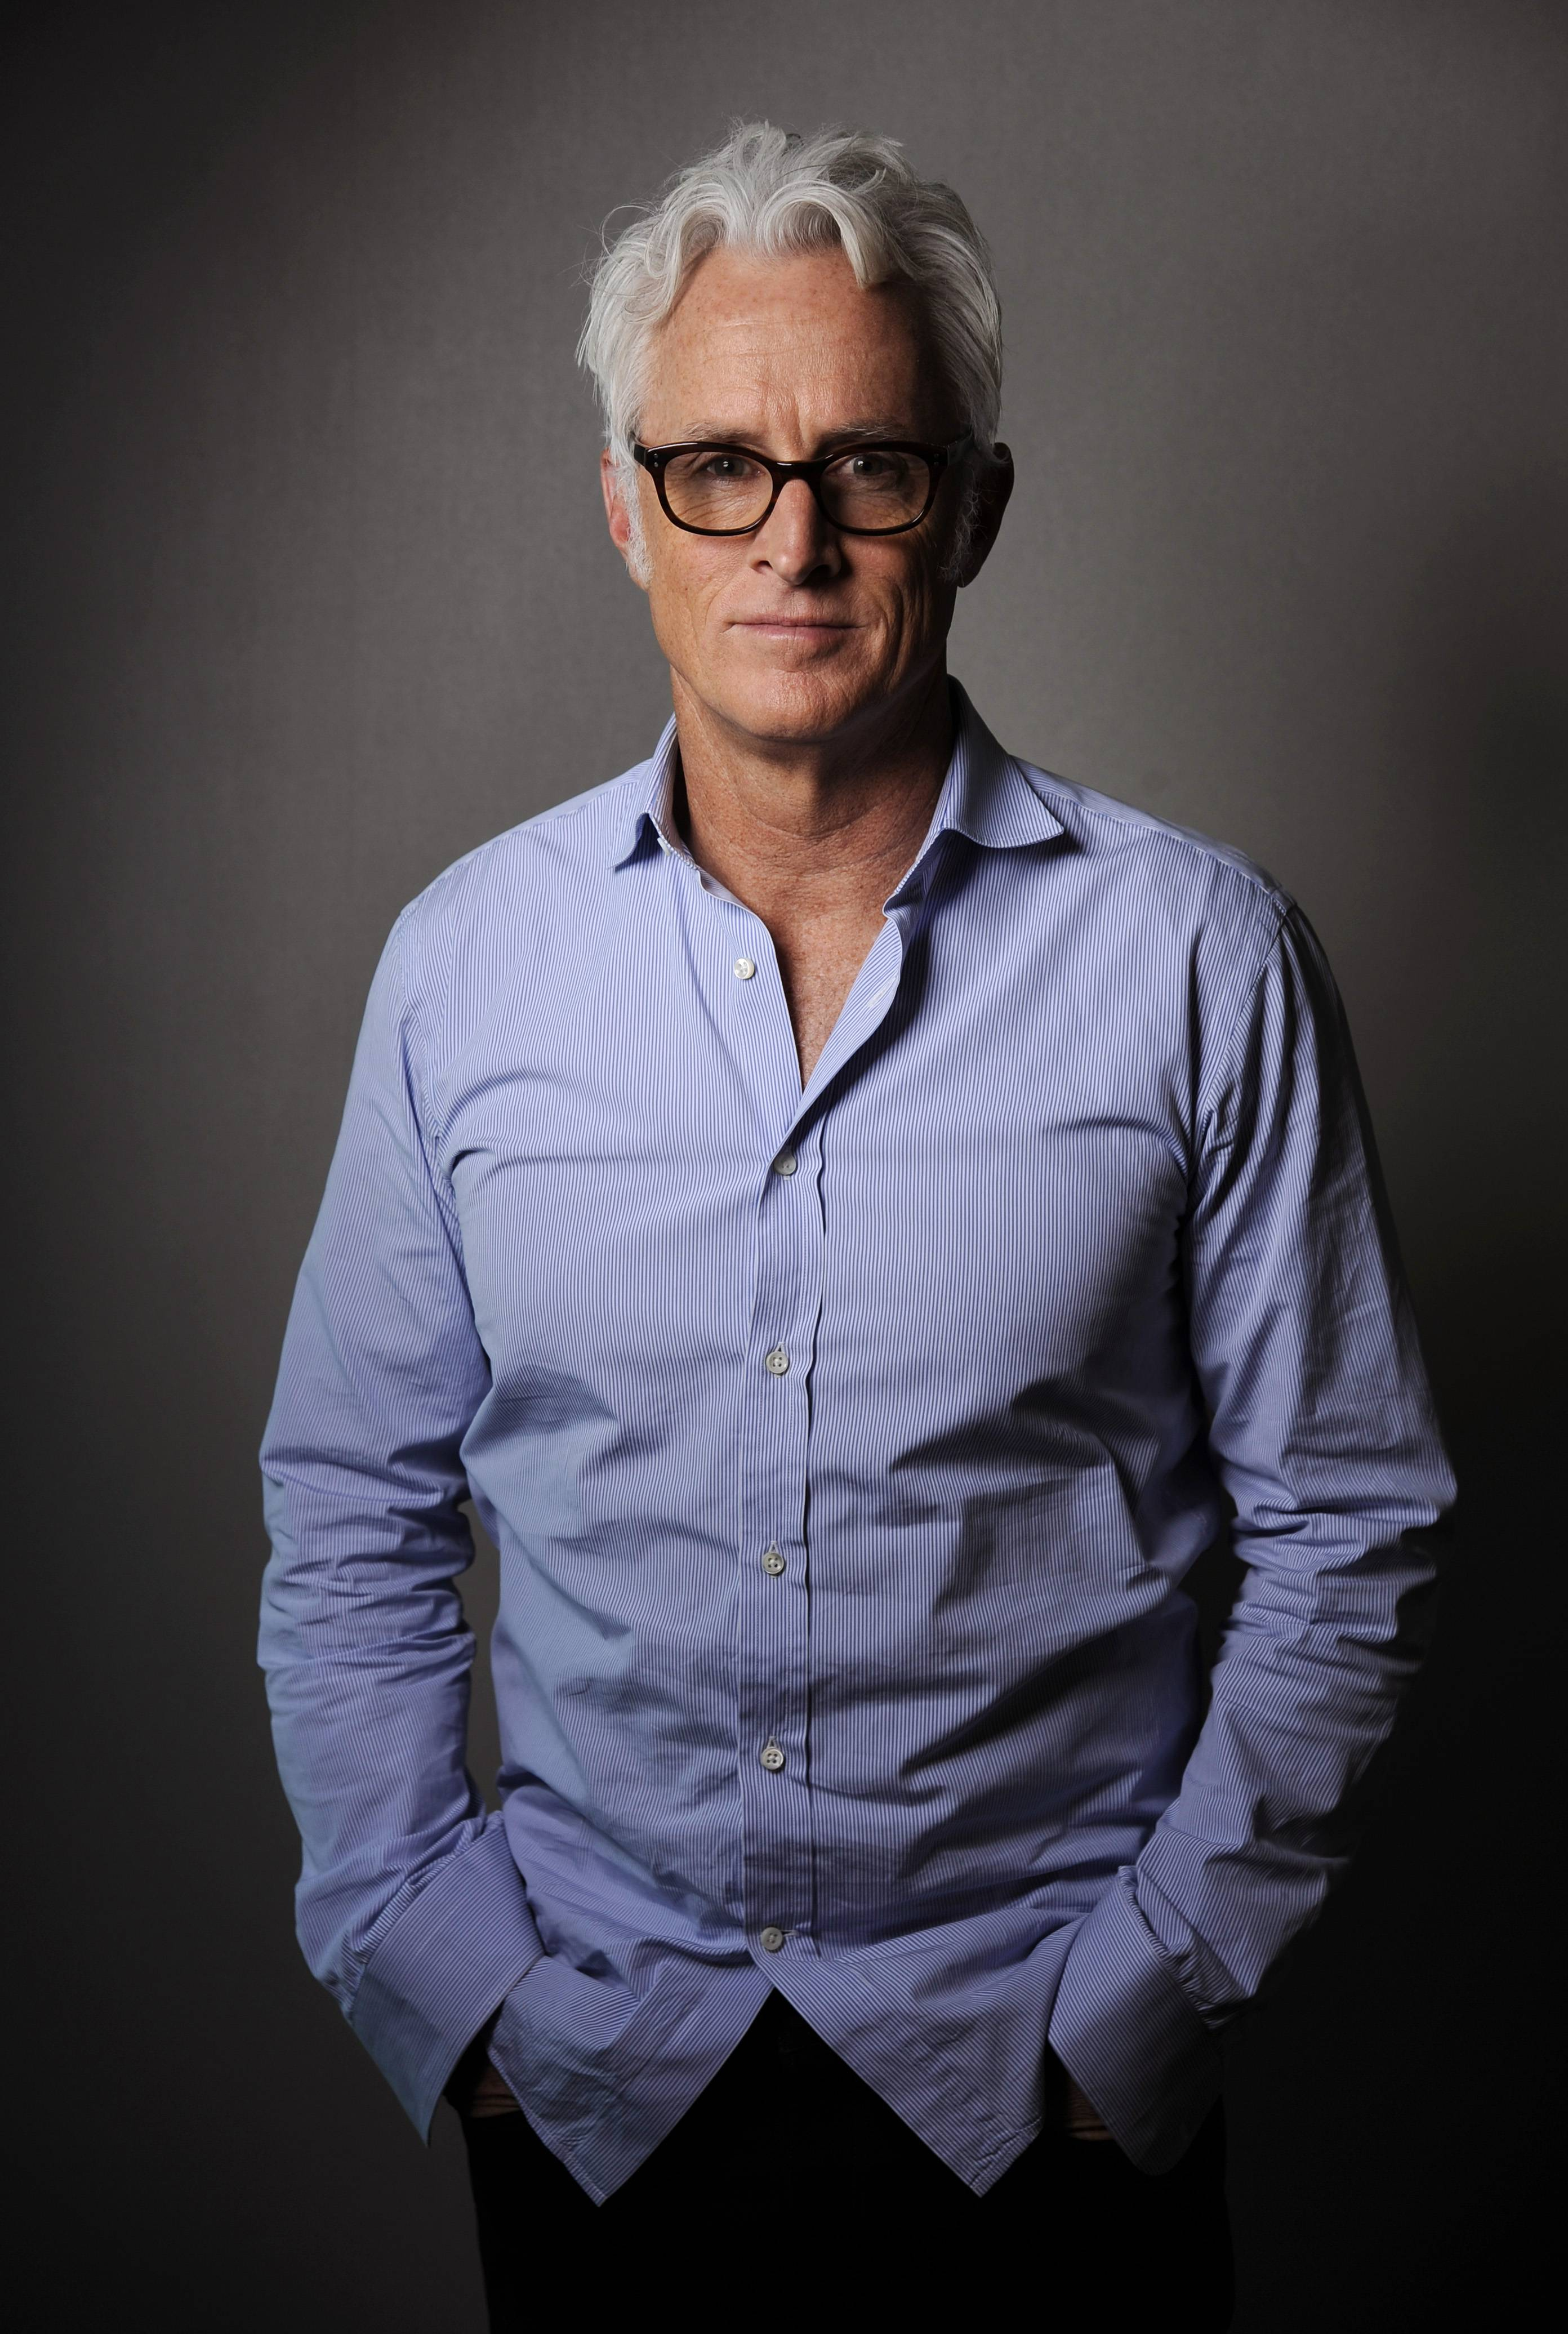 """Mad Men"" actor John Slattery makes his directorial debut with ""God's Pocket,"" an independent film based on Peter Dexter's novel. It includes one of the final performances by the late Philip Seymour Hoffman."